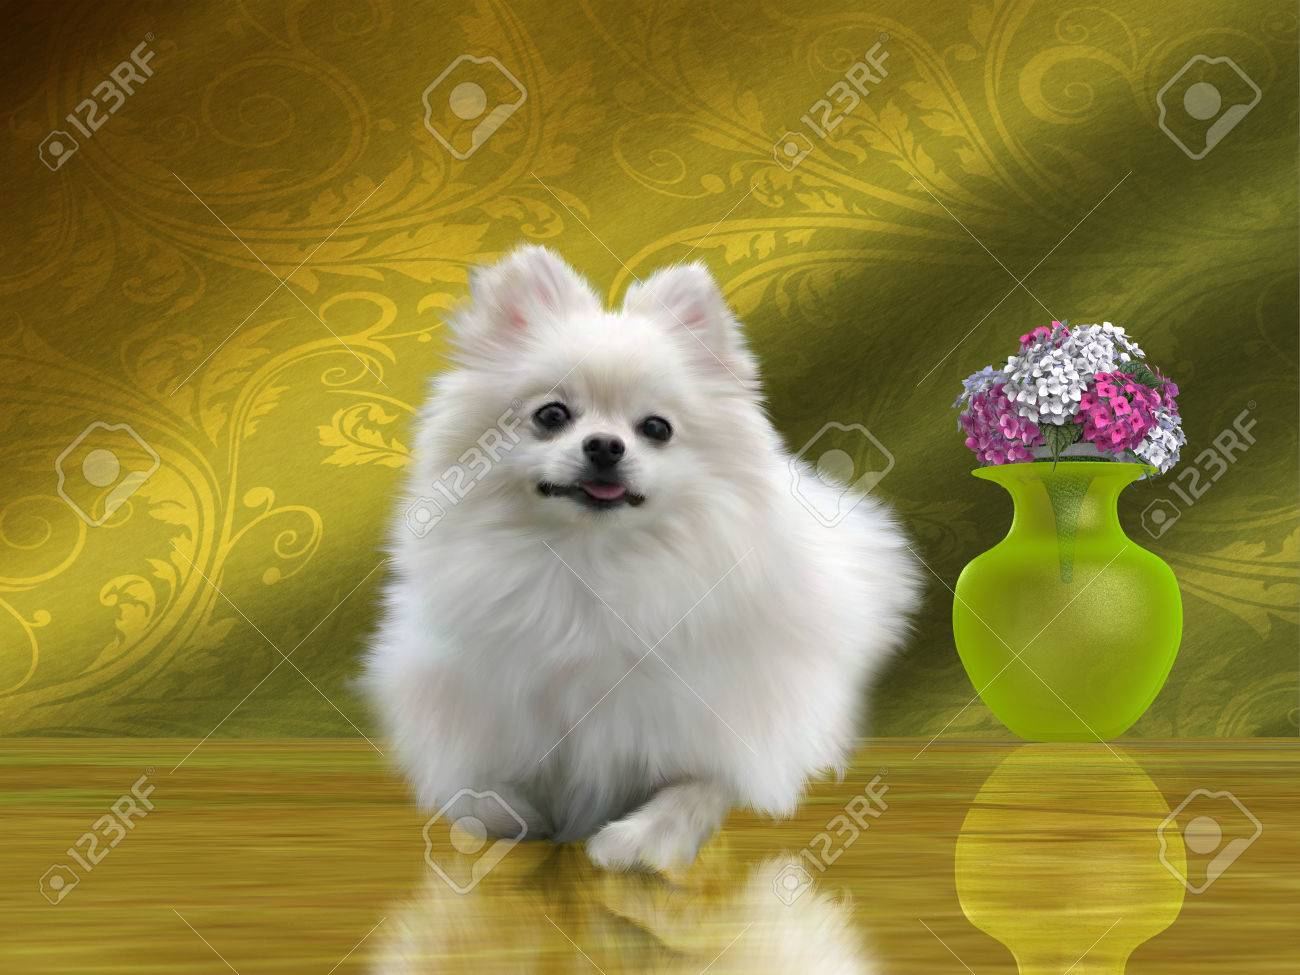 The Pomeranian Is A Small Toy Breed Of Dog That Was Started In